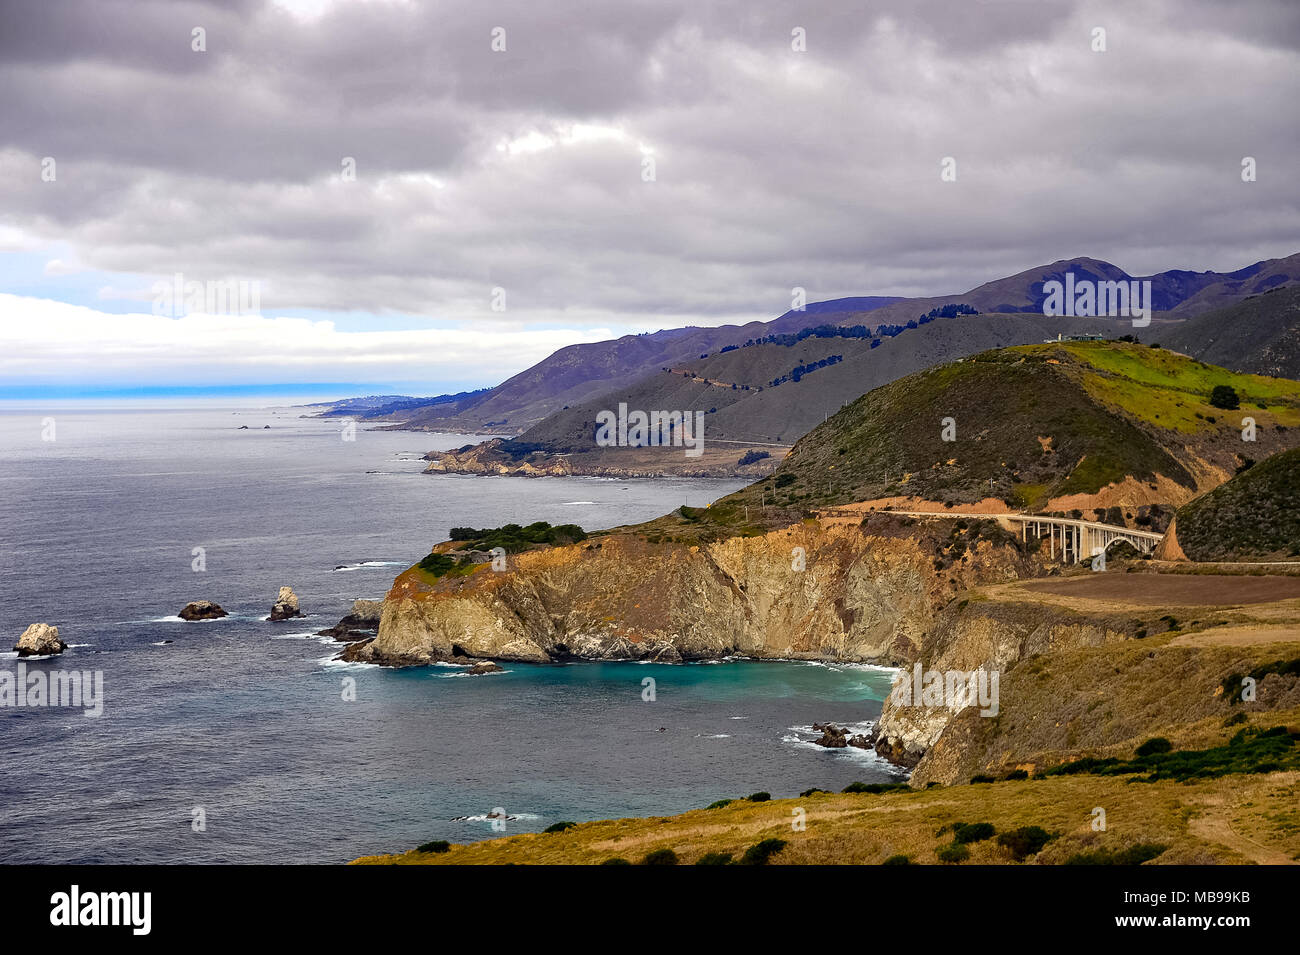 Aerial view of Bixby Creek Bridge, Cabrillo Highway 1, California, USA. Coastal landscape, Pacific ocean, rolling green hills and grey cloud skies - Stock Image